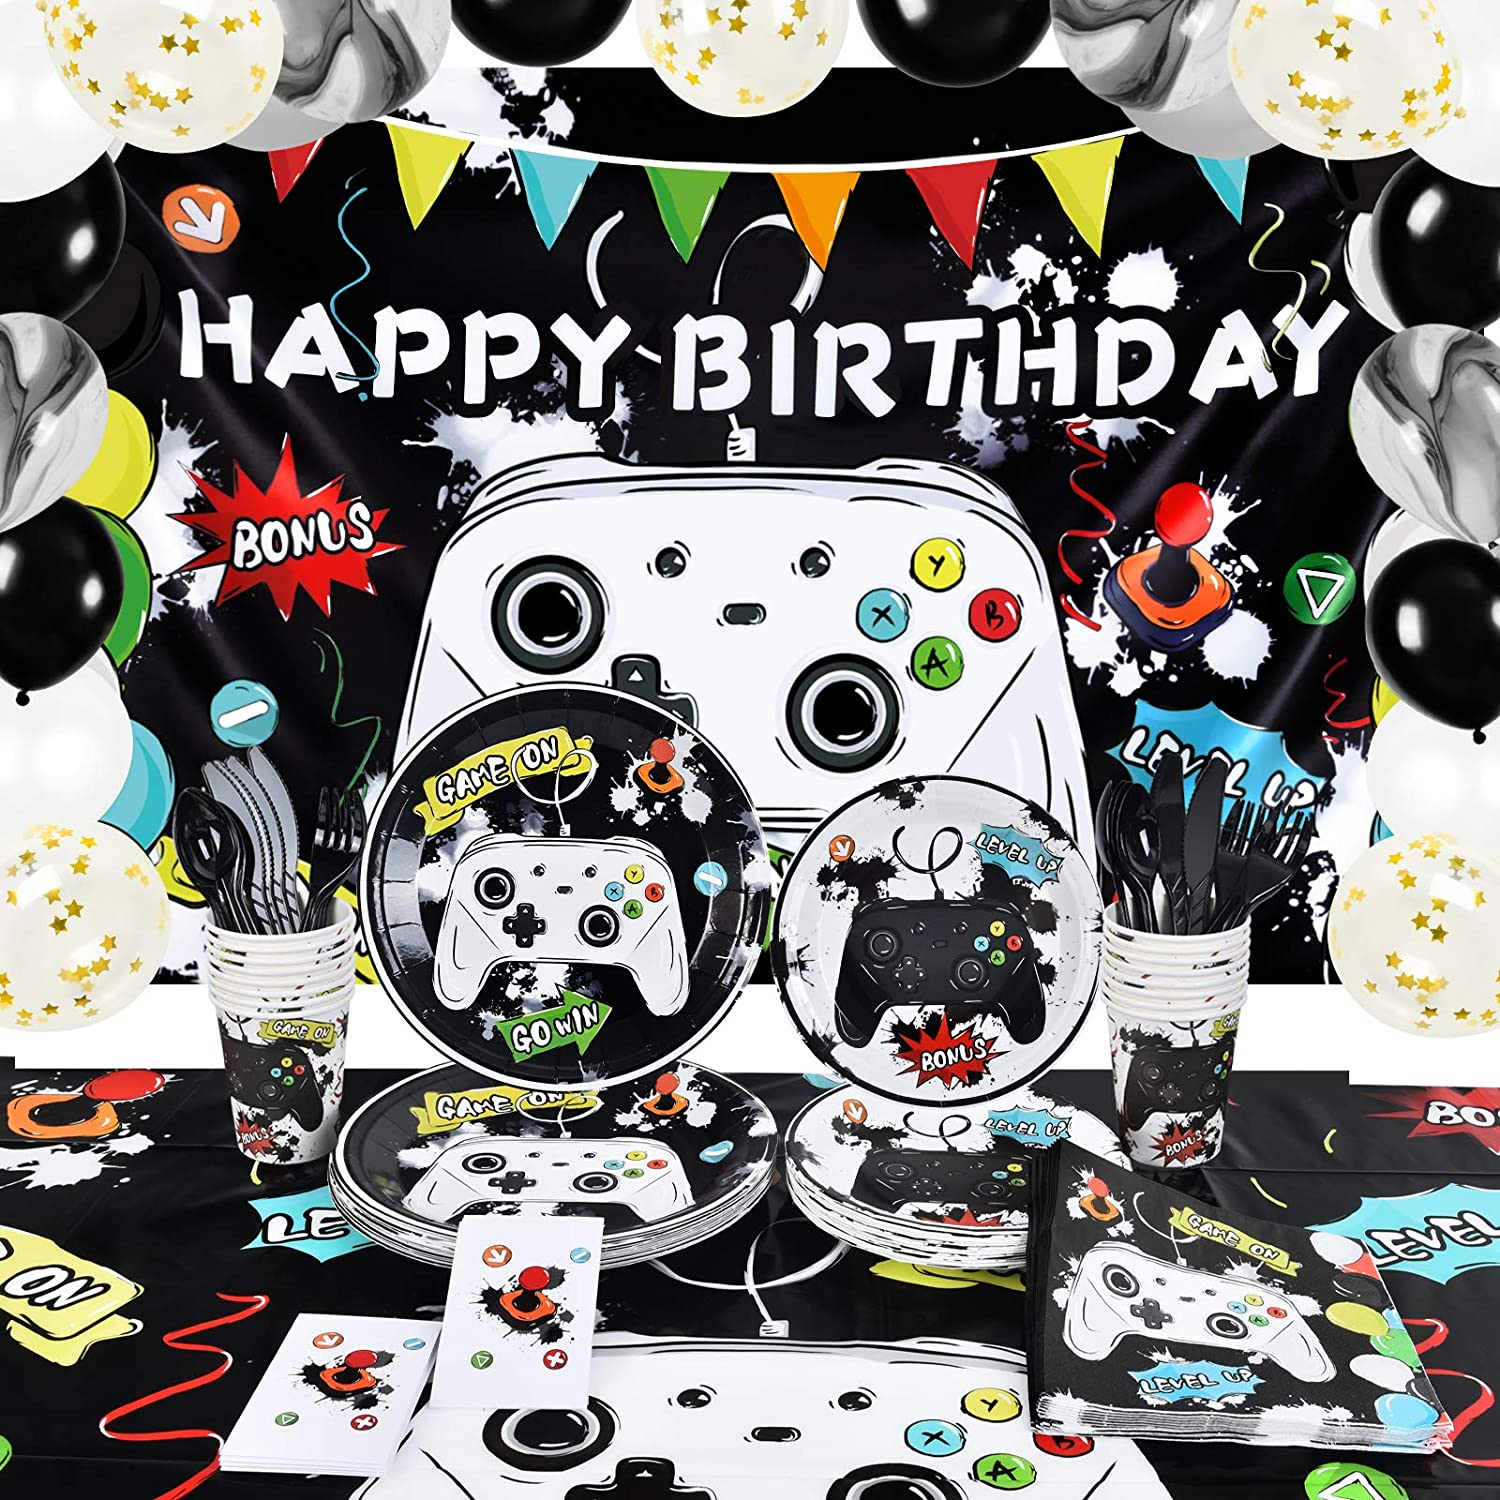 Super-cheap Watercolor Video Game Birthday Party - Long-awaited Theme Supplies